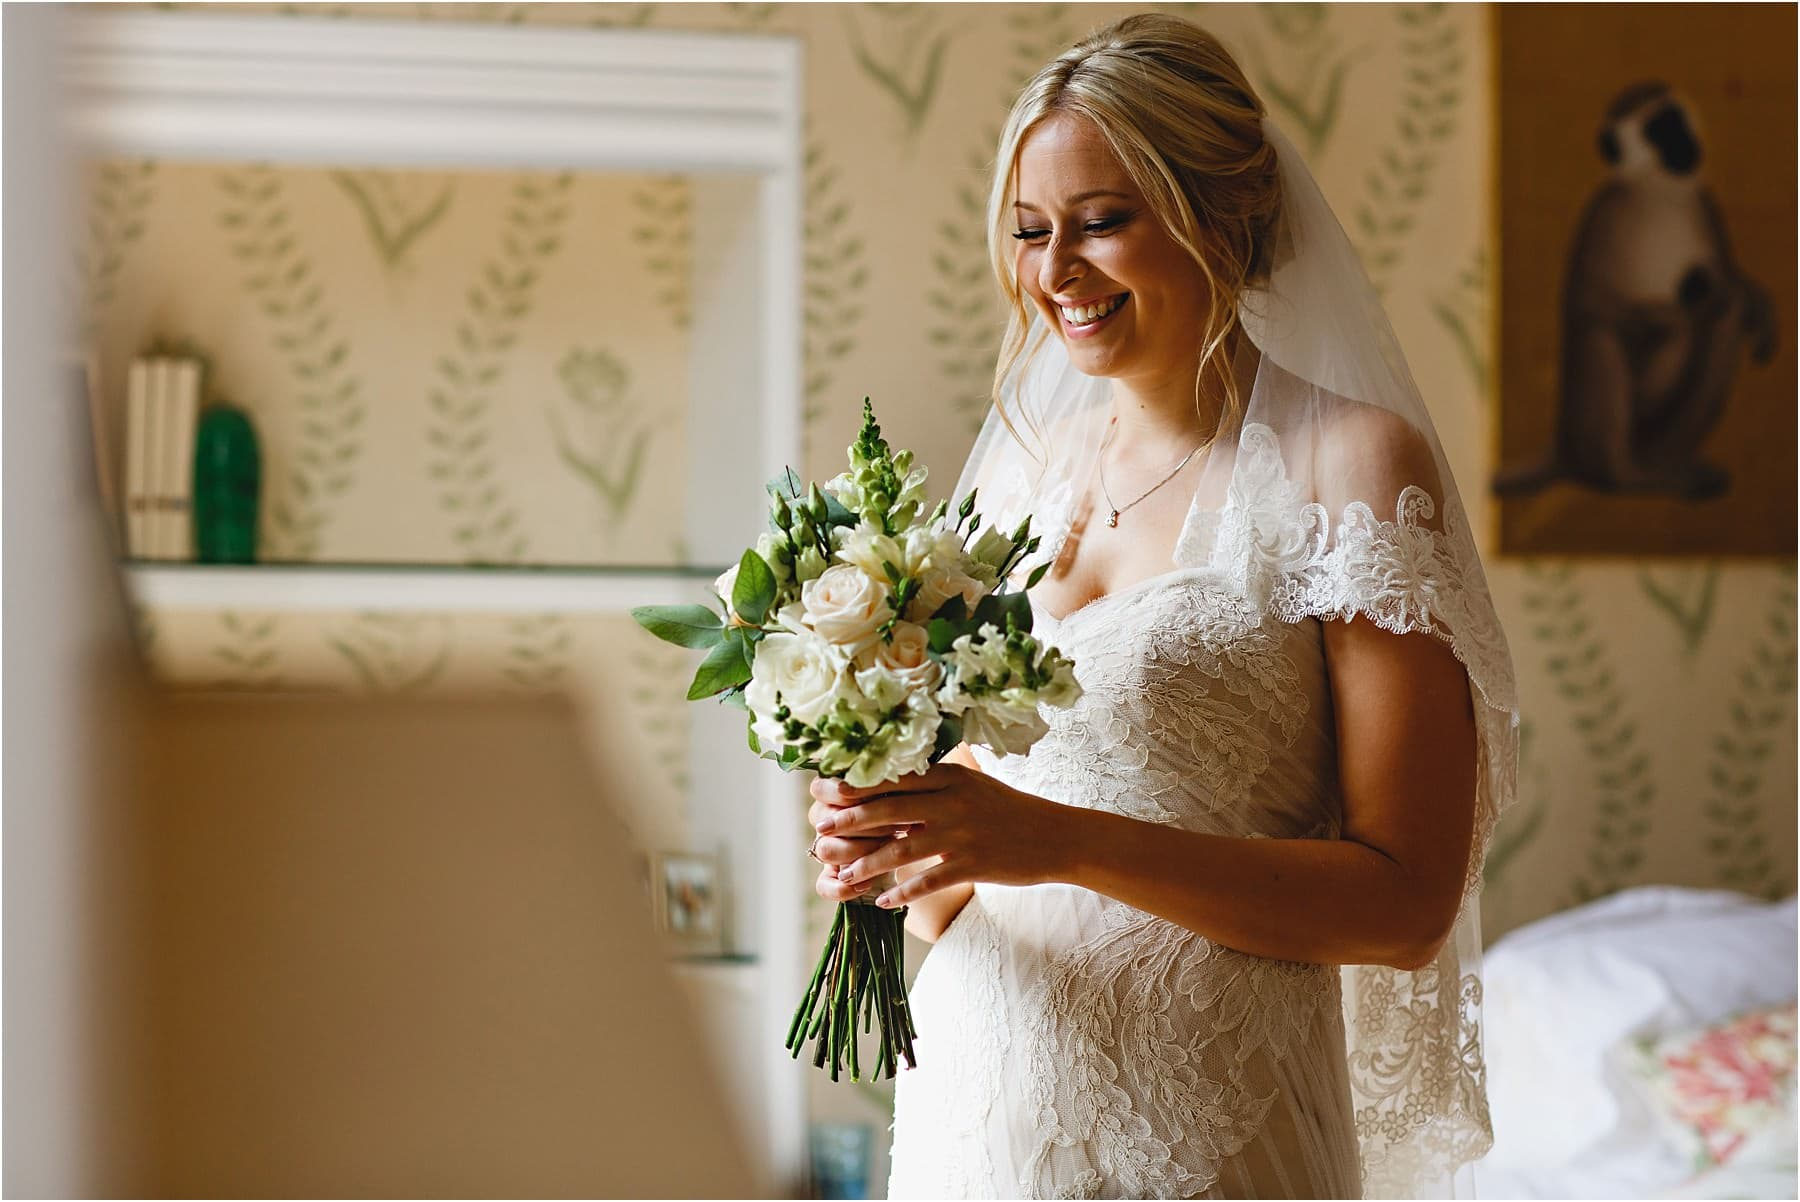 the bride with ther flowers